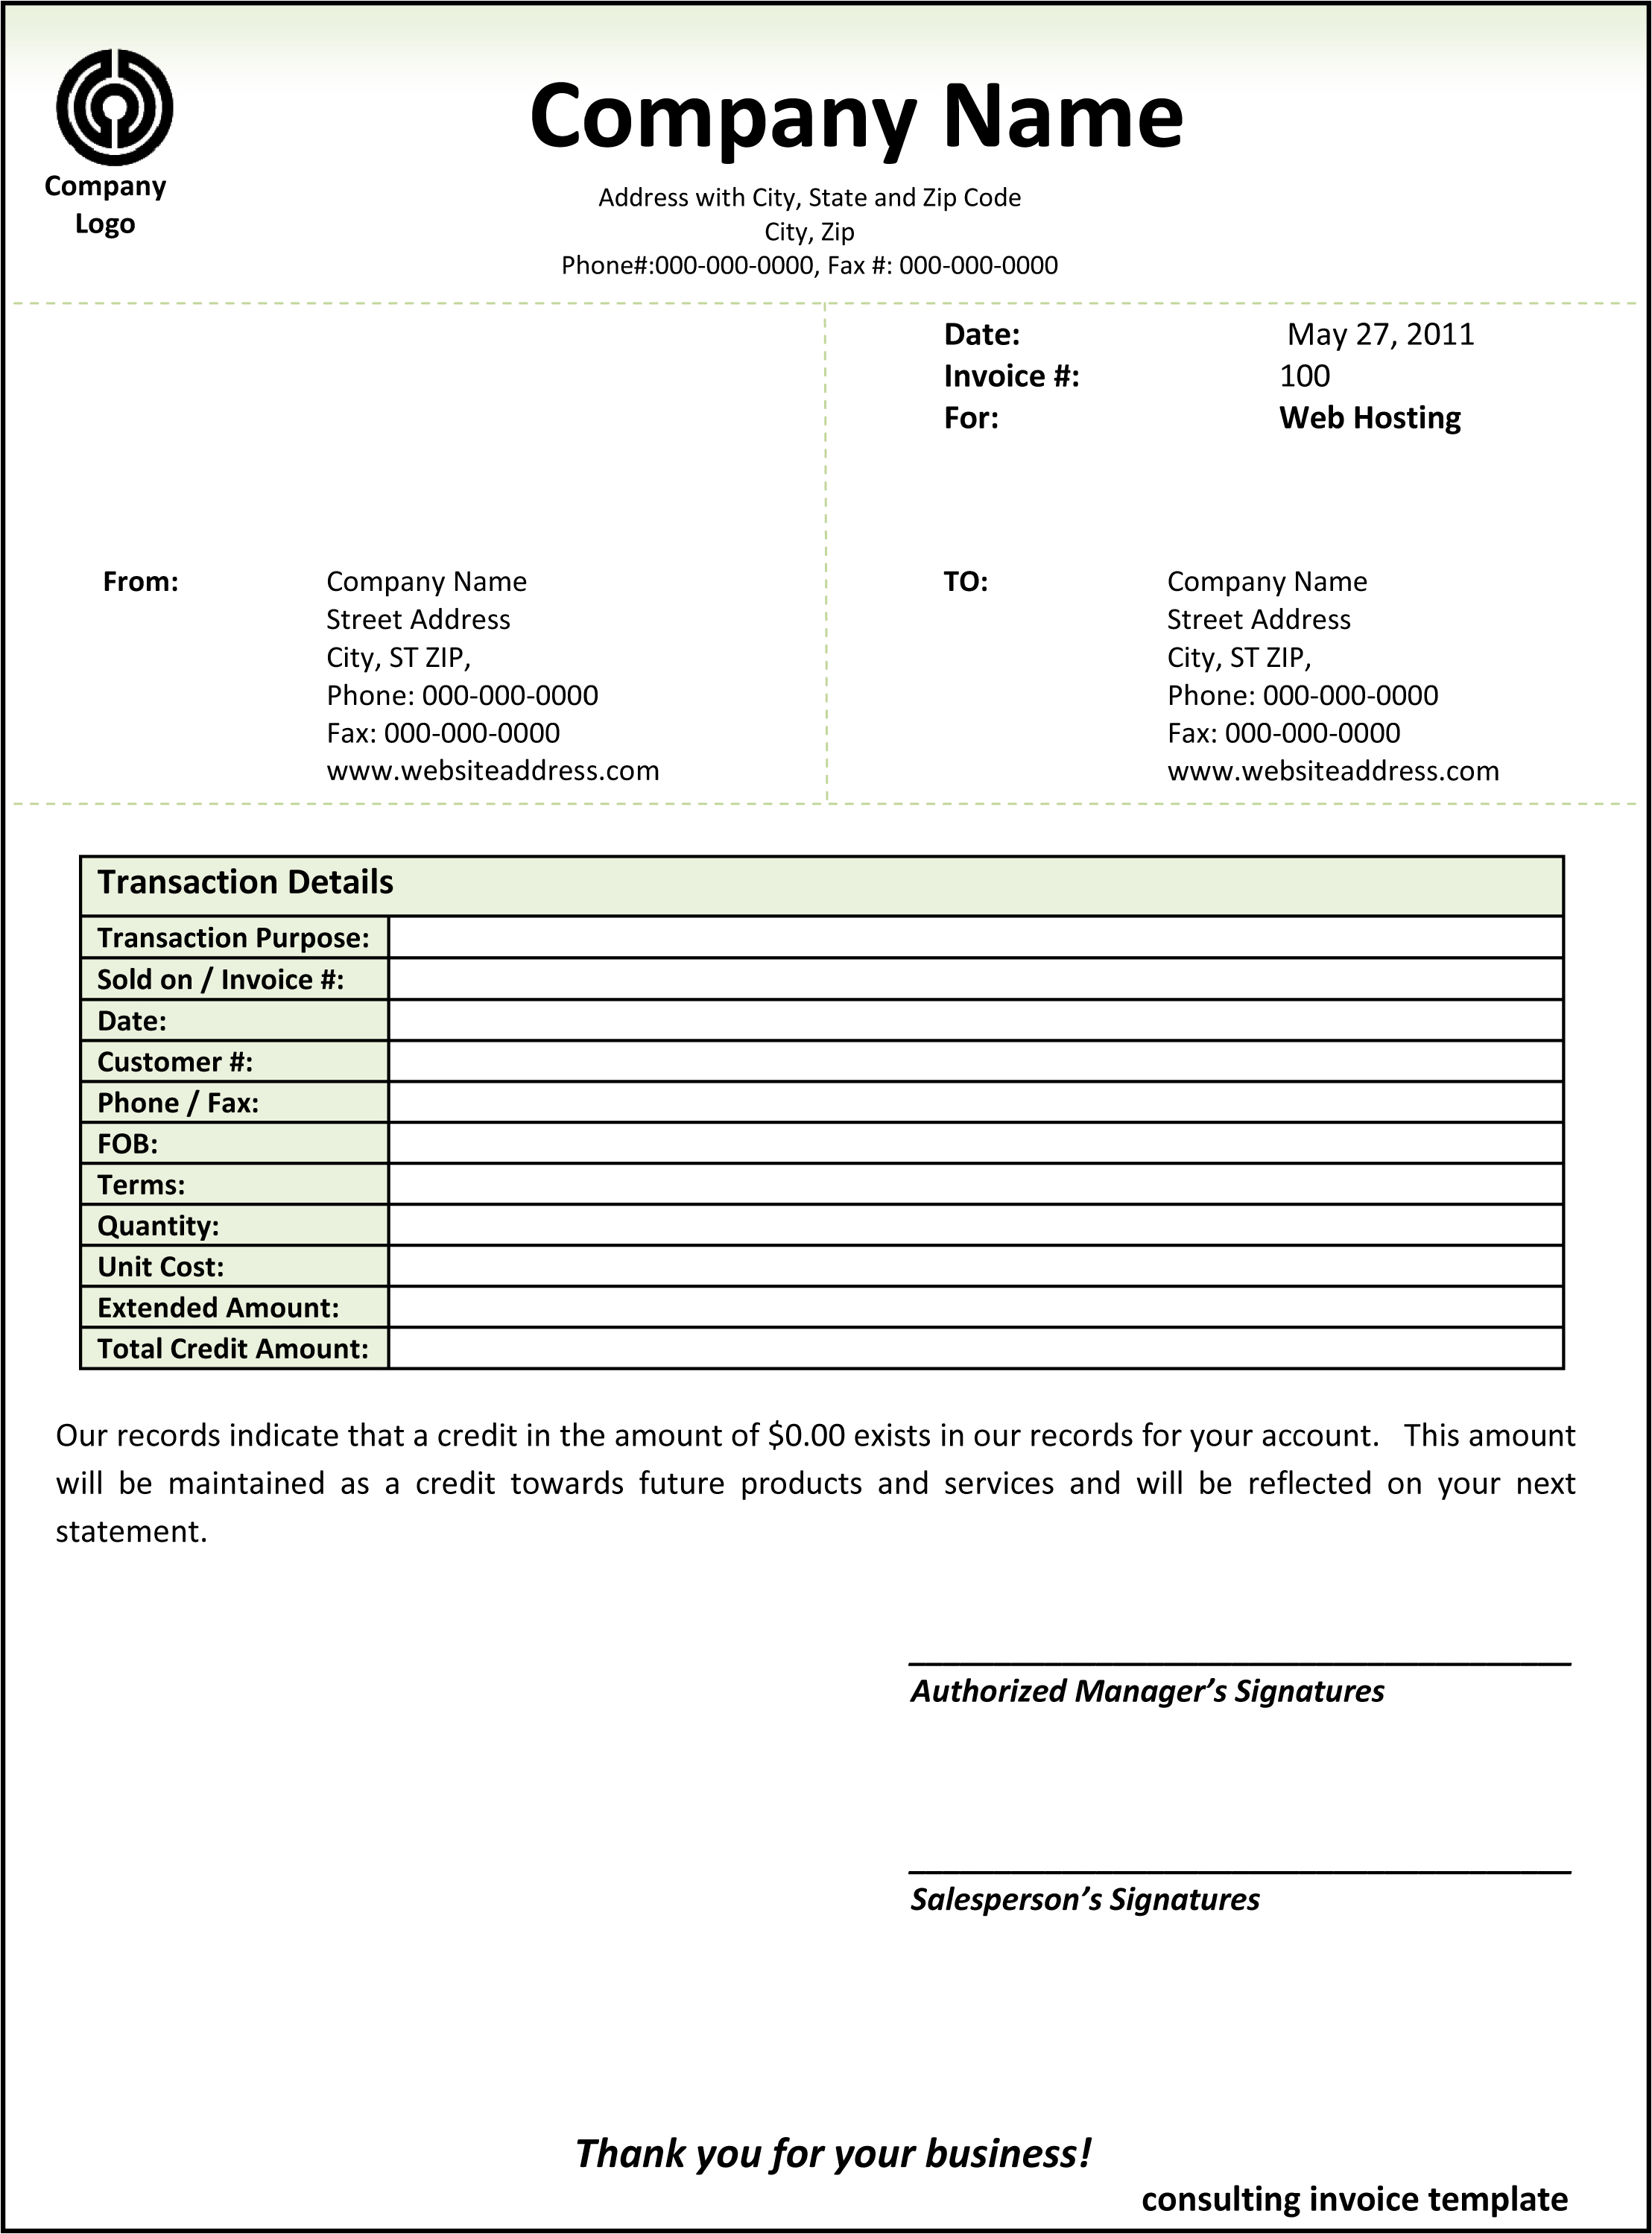 Consulting invoice template word invoice example for Consulting fee agreement template